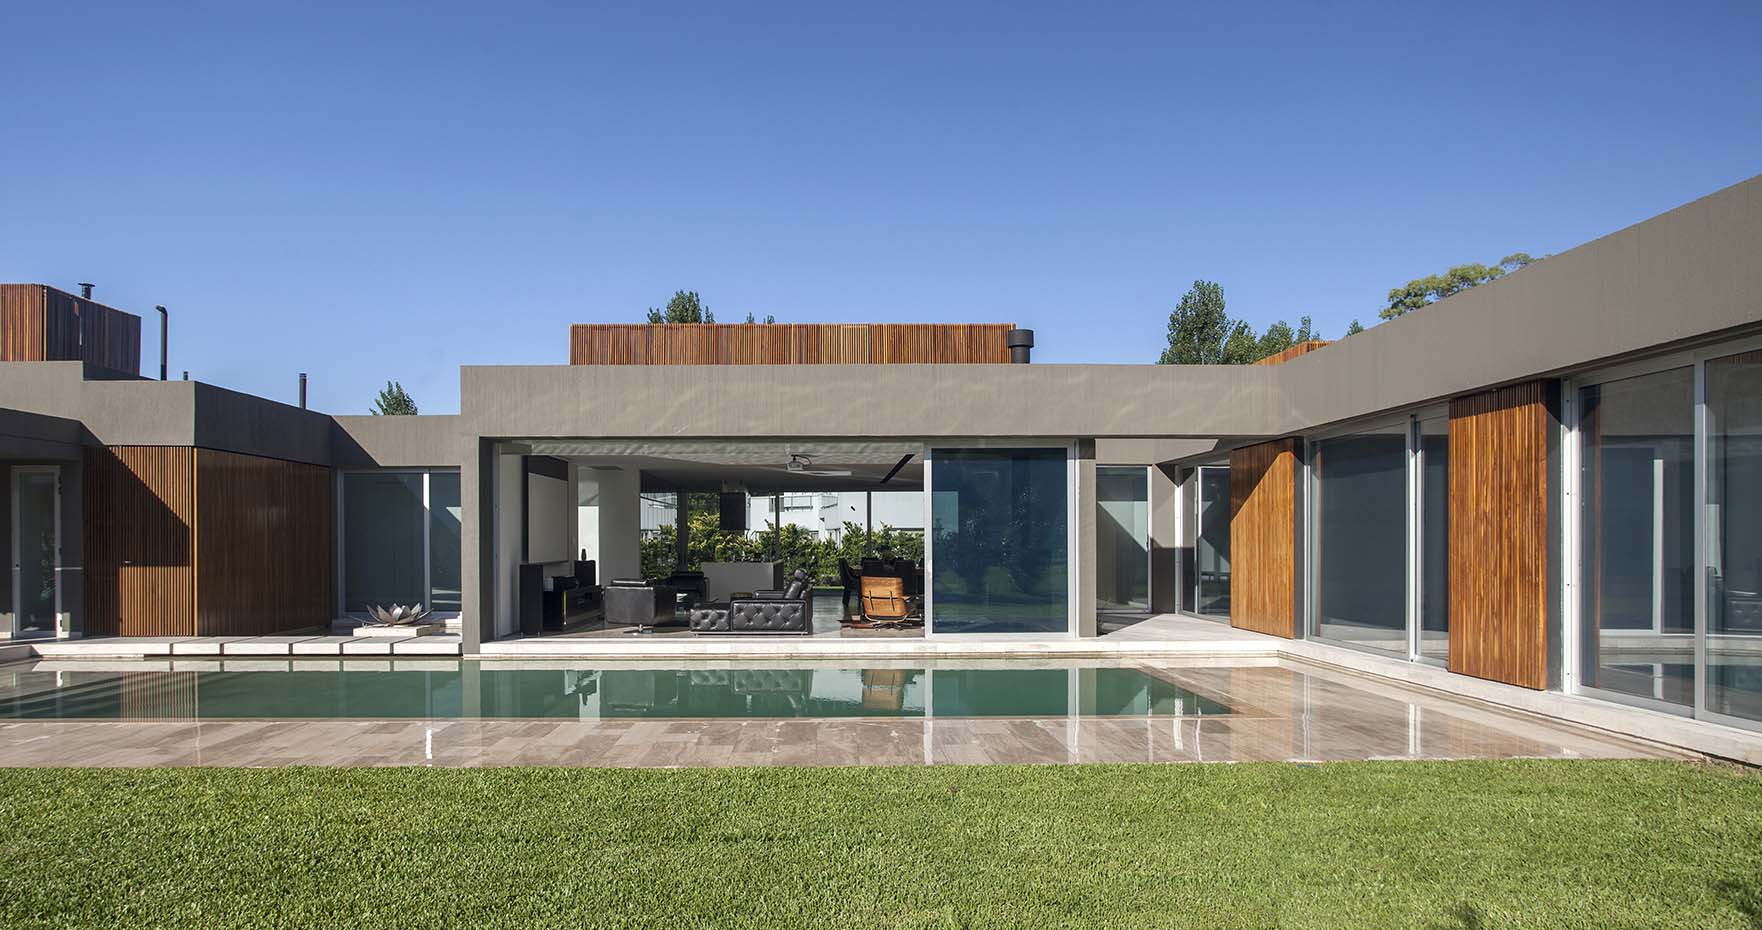 Pool, stepping stones and garden around the house give it a luxurious modern appeal